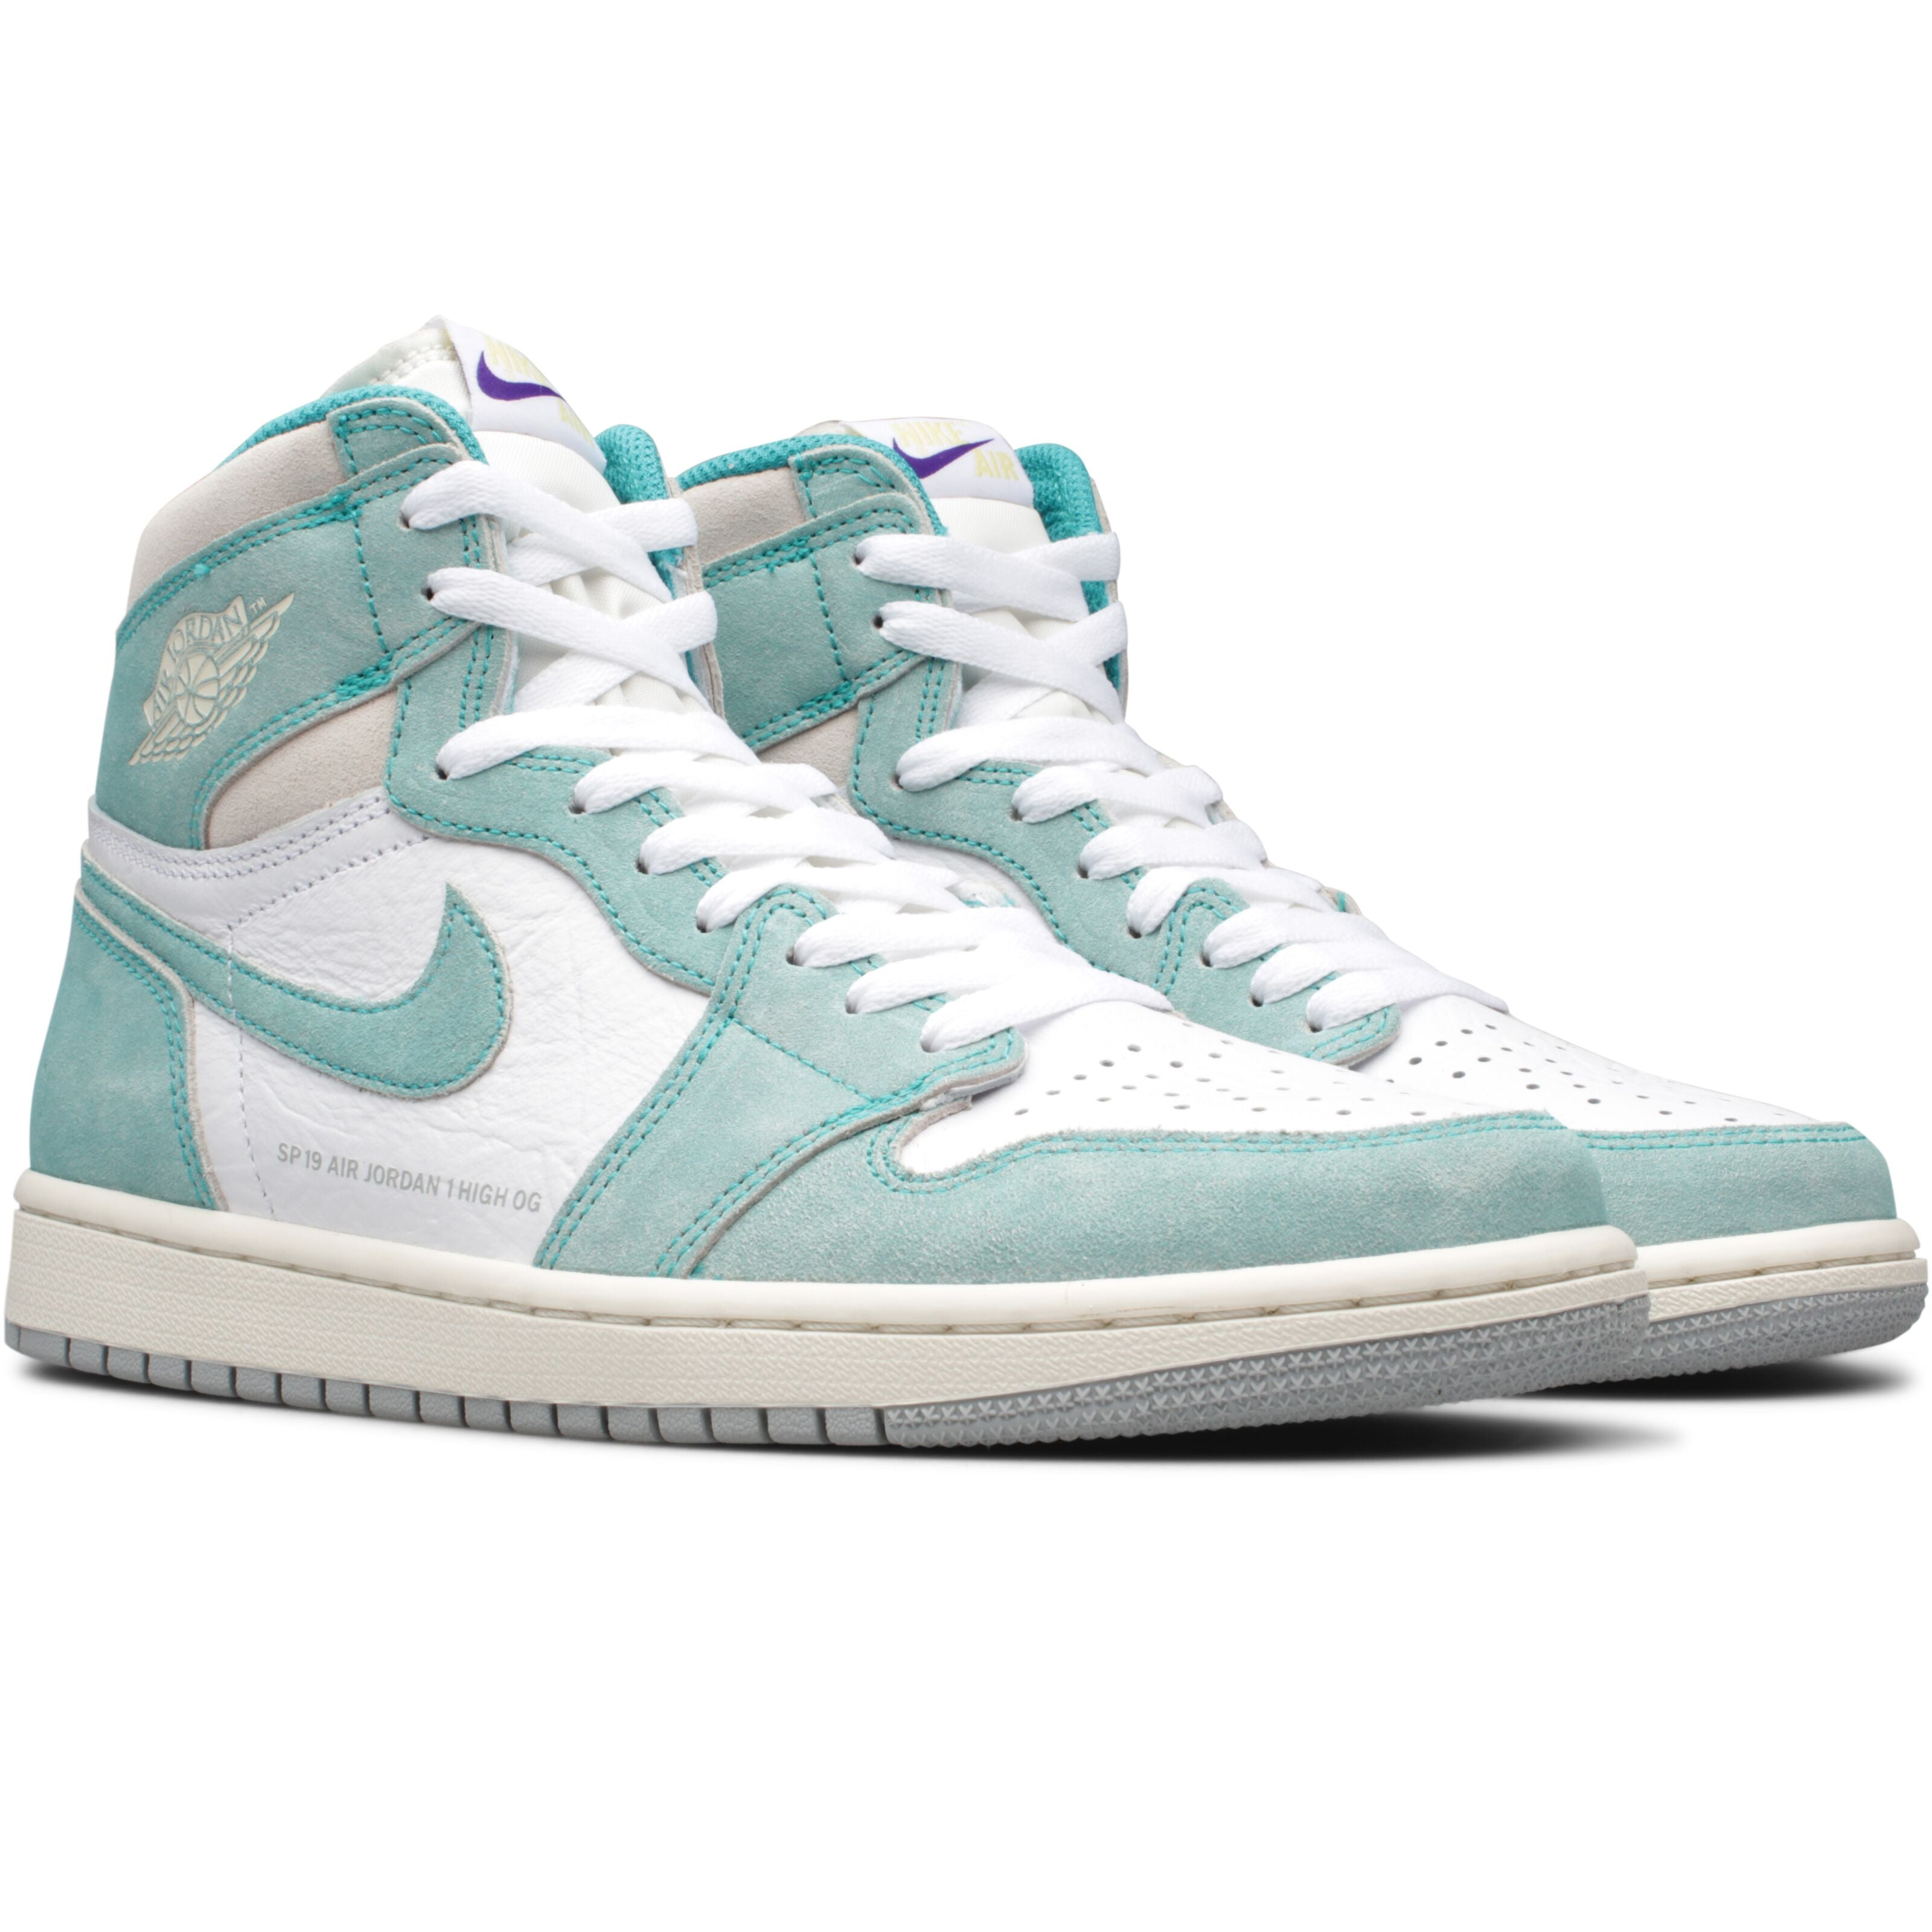 various design best price factory outlet 2/15/19: Air Jordan 1 Retro High OG – Bodega